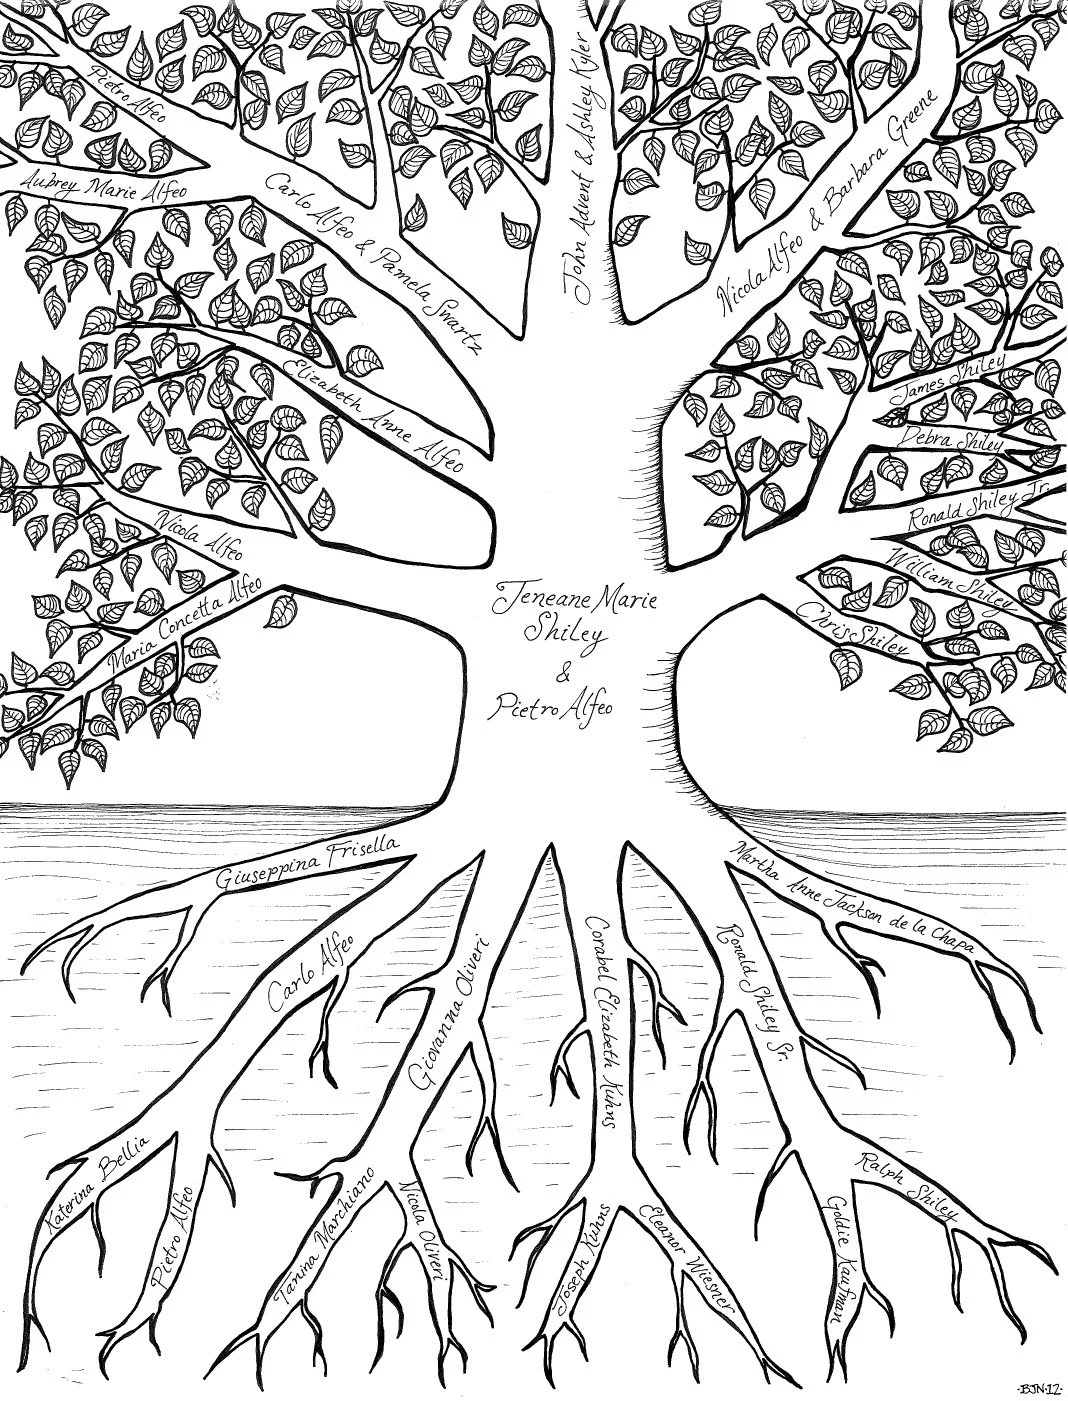 how do i draw a family tree diagram fight or flight response your custom illustrated in pen and ink